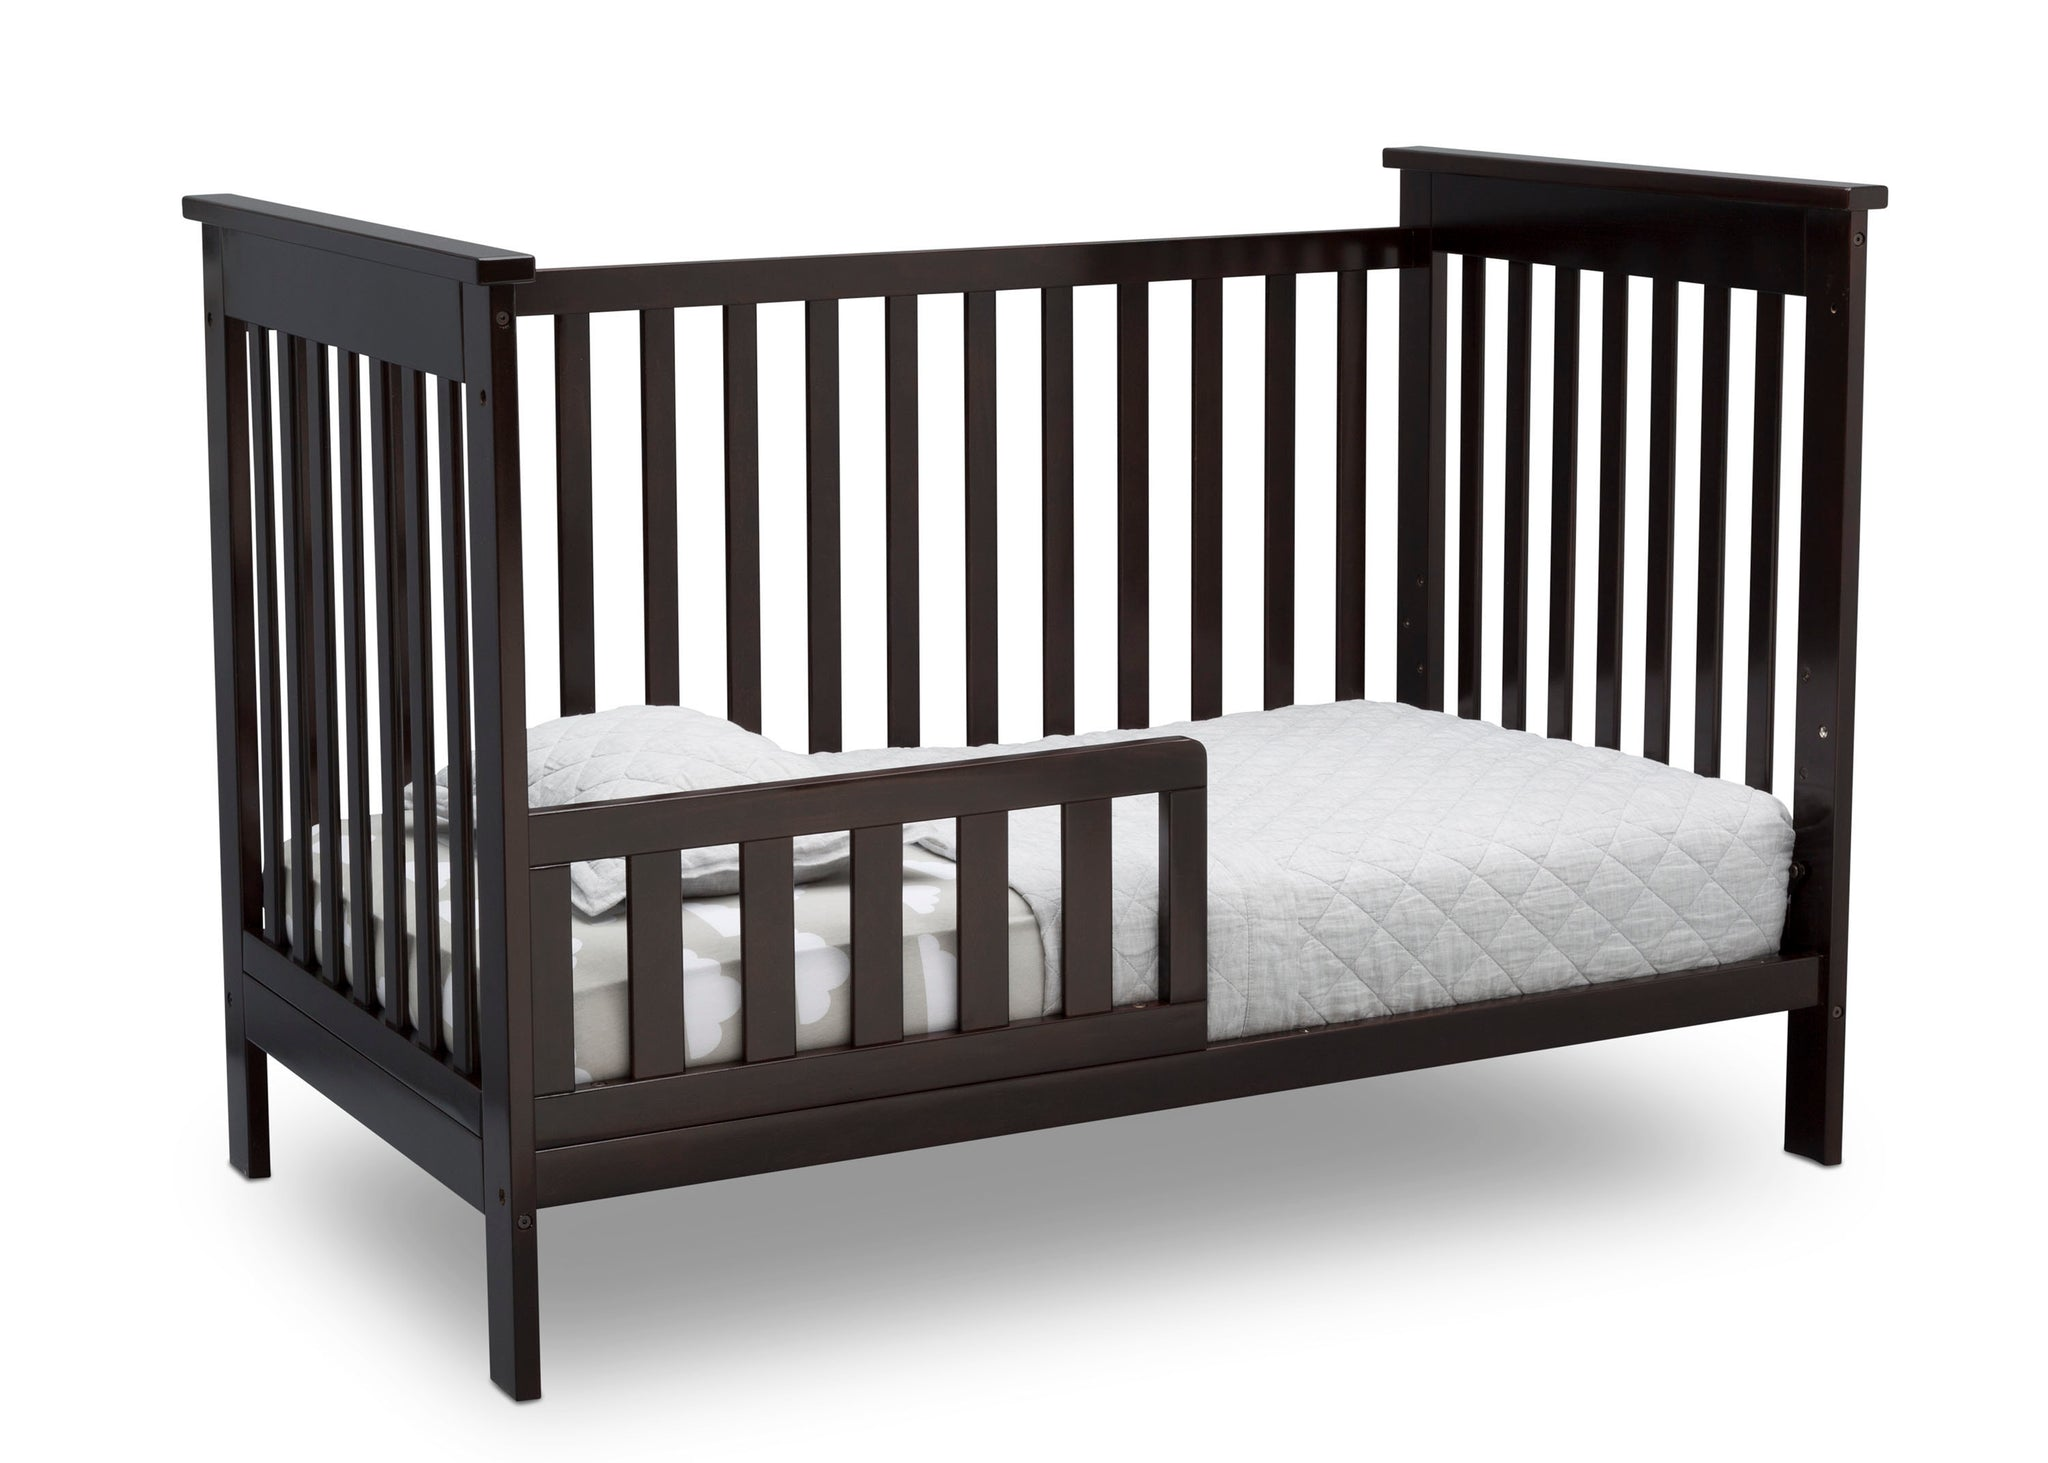 Delta Children Dark Chocolate (207) Adley 3-in-1 Crib (W102130) Toddler Bed c4c